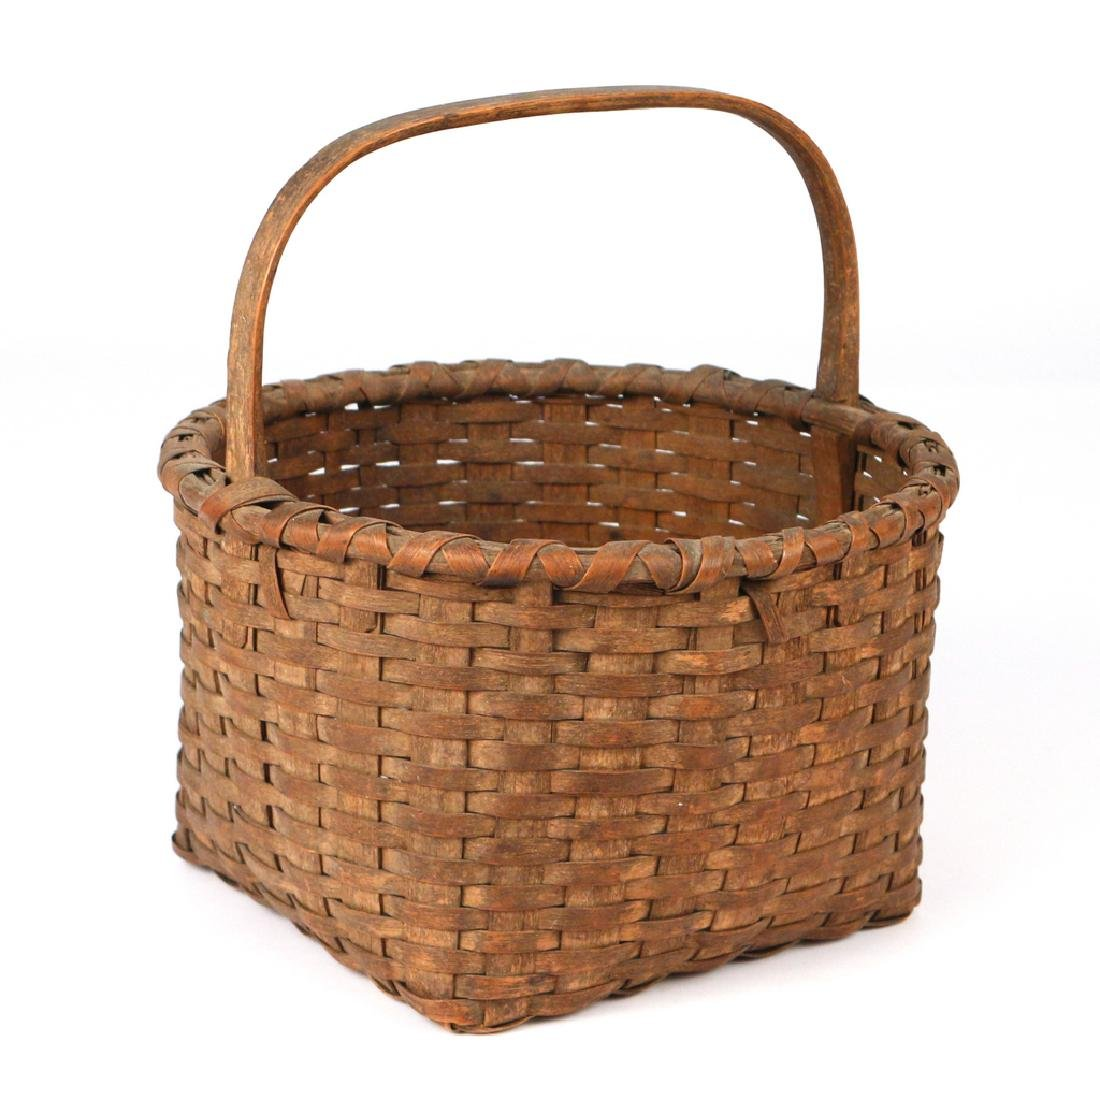 ANTIQUE POUND RIDGE SPLINT BASKET